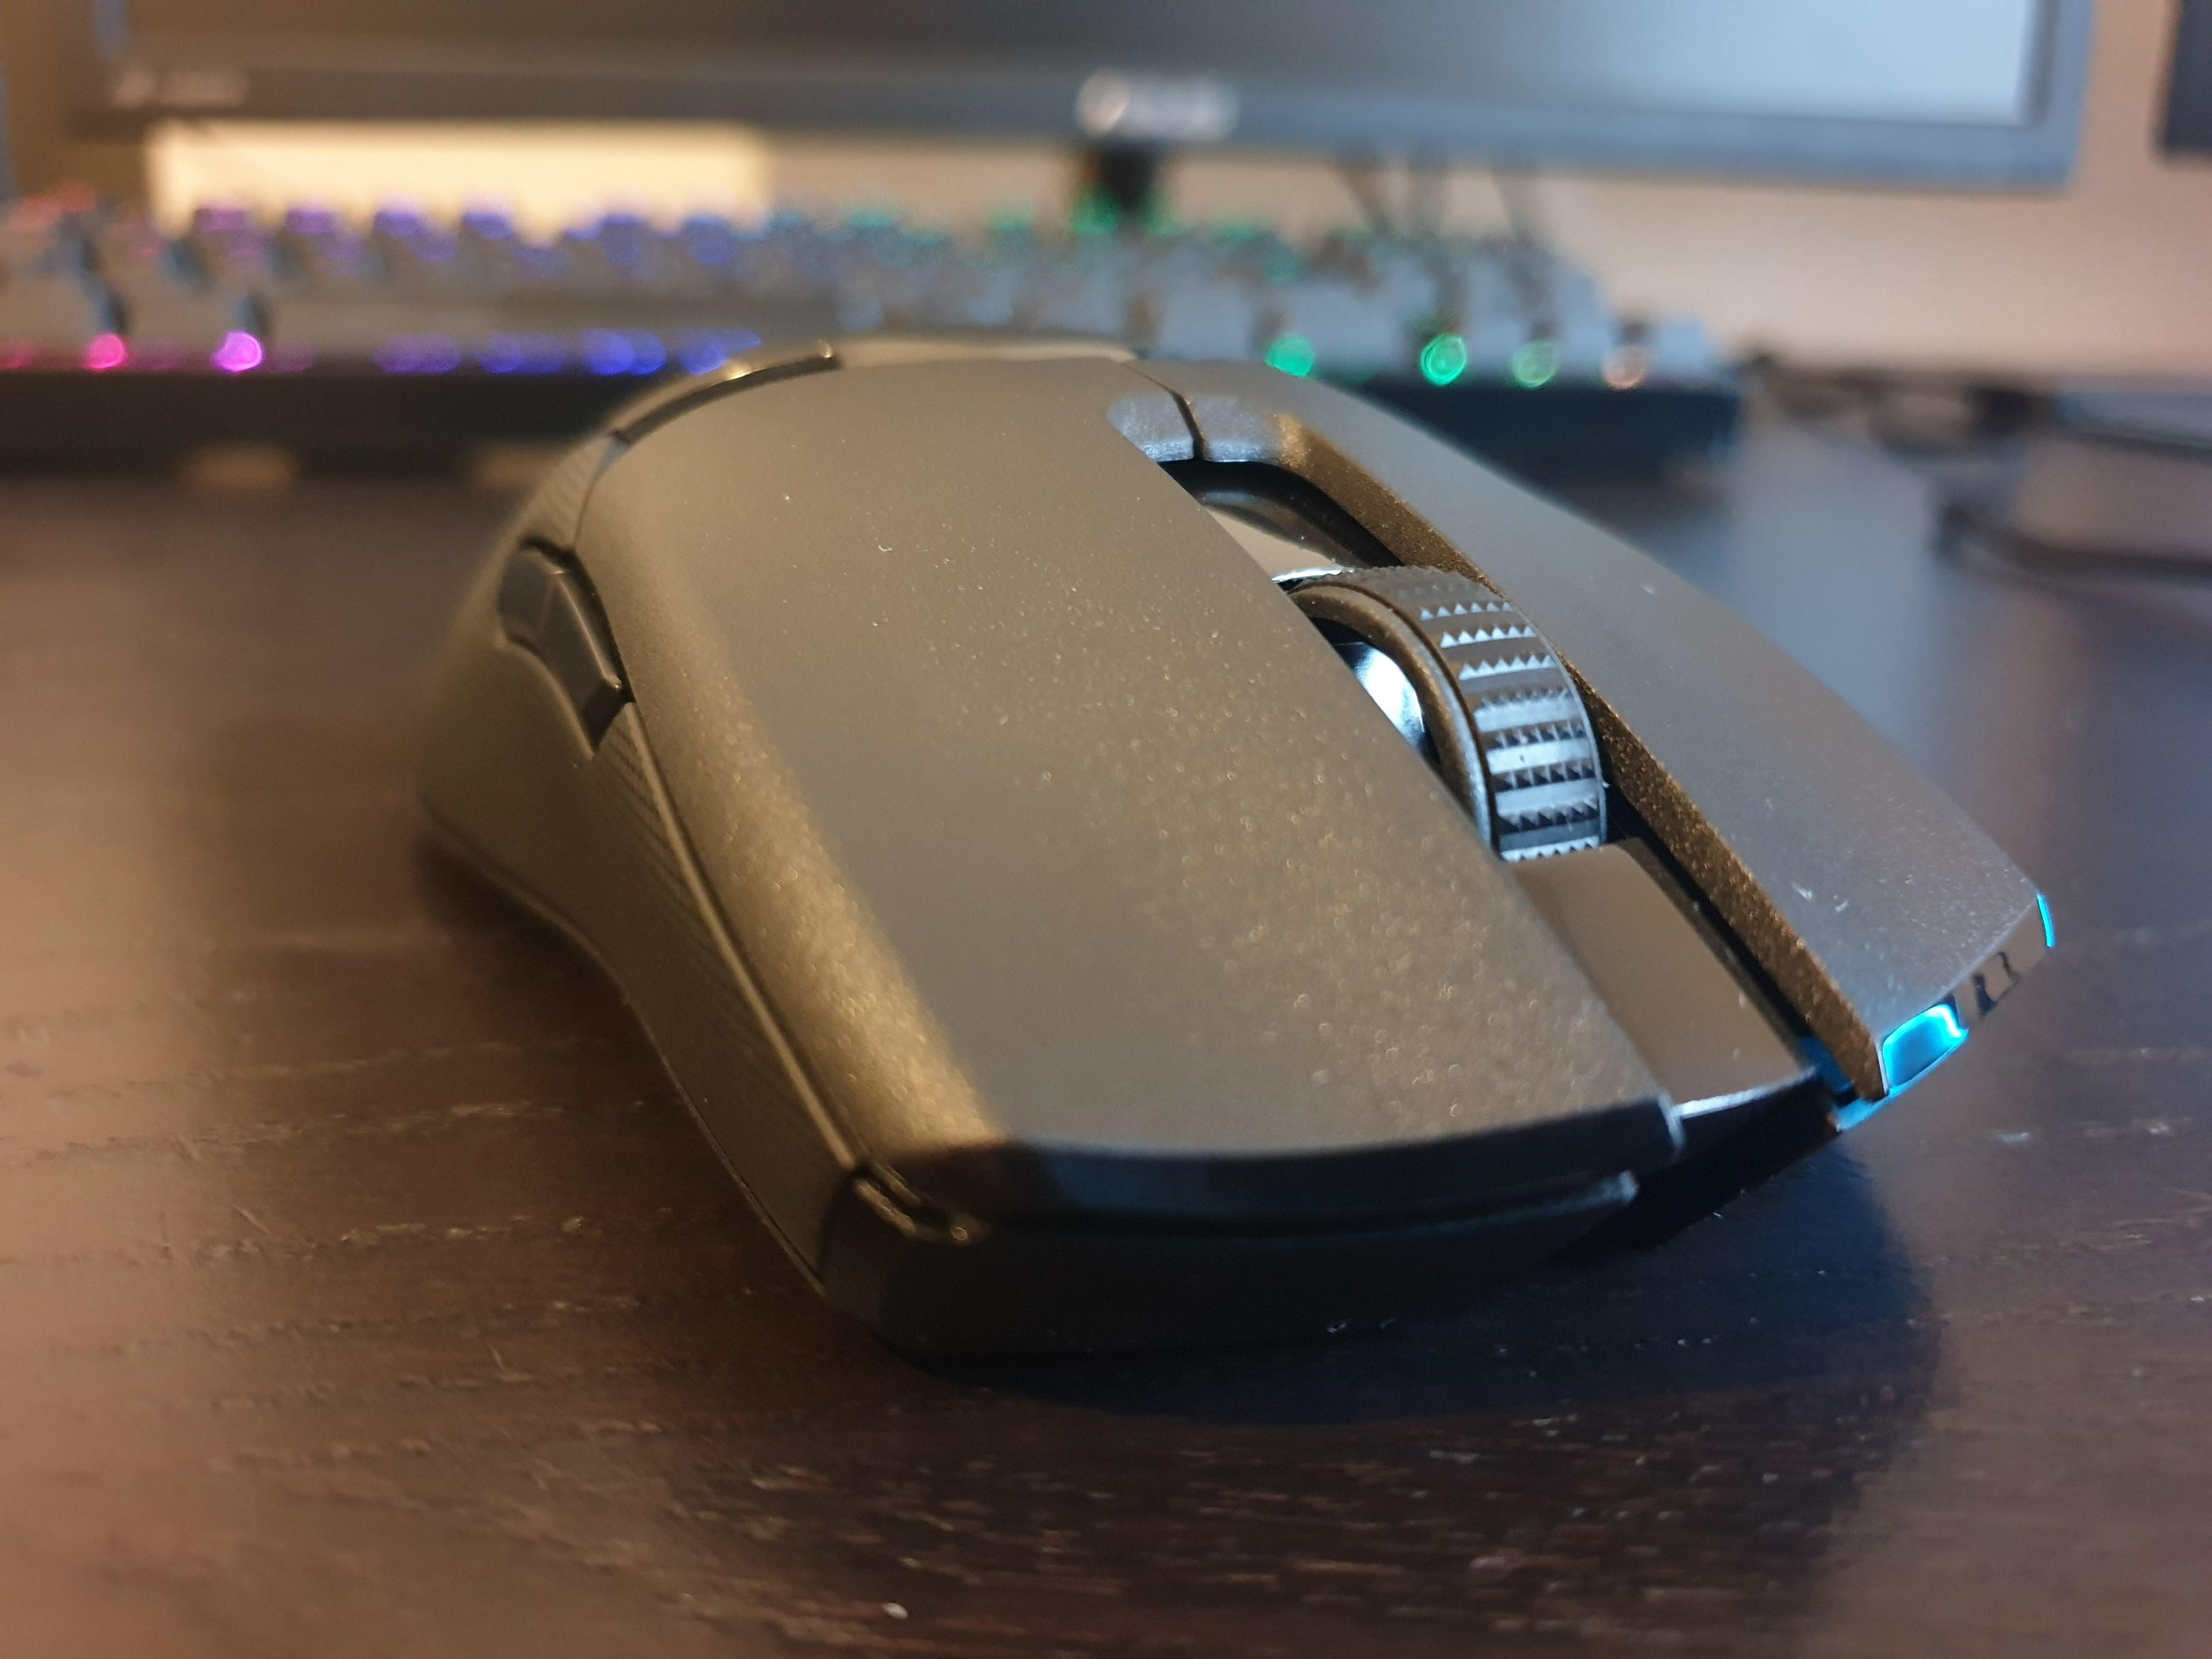 Frontal image of Viper Ultimate mouse